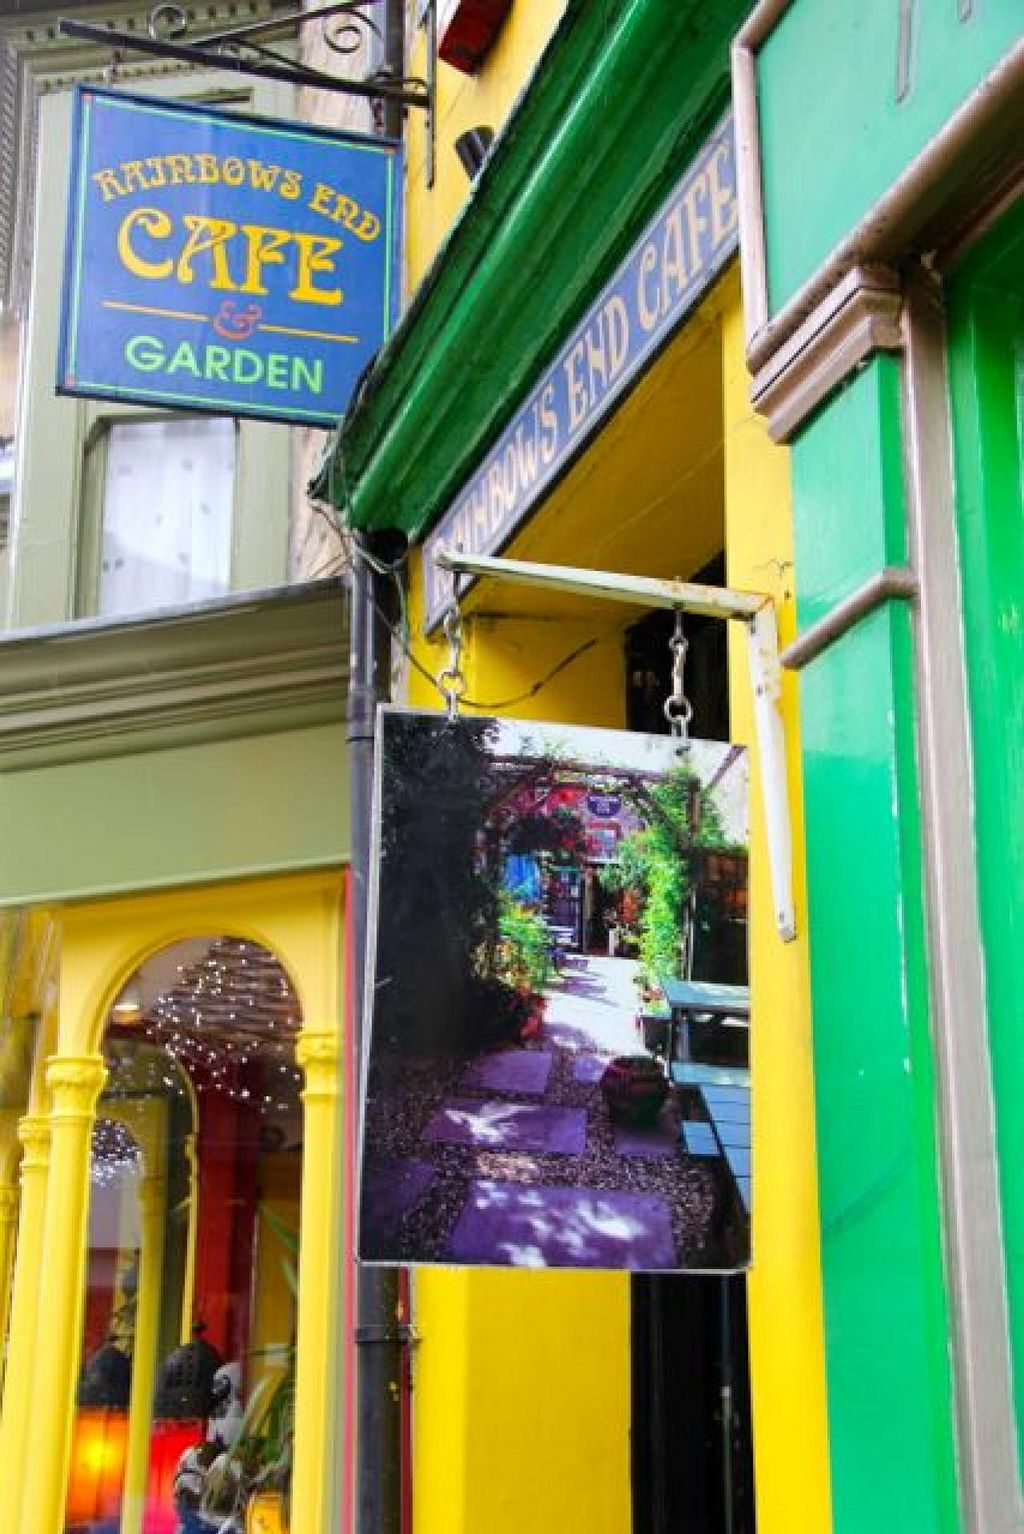 """Photo of Rainbows End Cafe  by <a href=""""/members/profile/trinitybourne"""">trinitybourne</a> <br/>A friendly little hide away directly off the High Street in Glastonbury - look out for the sign <br/> February 9, 2014  - <a href='/contact/abuse/image/5099/64010'>Report</a>"""